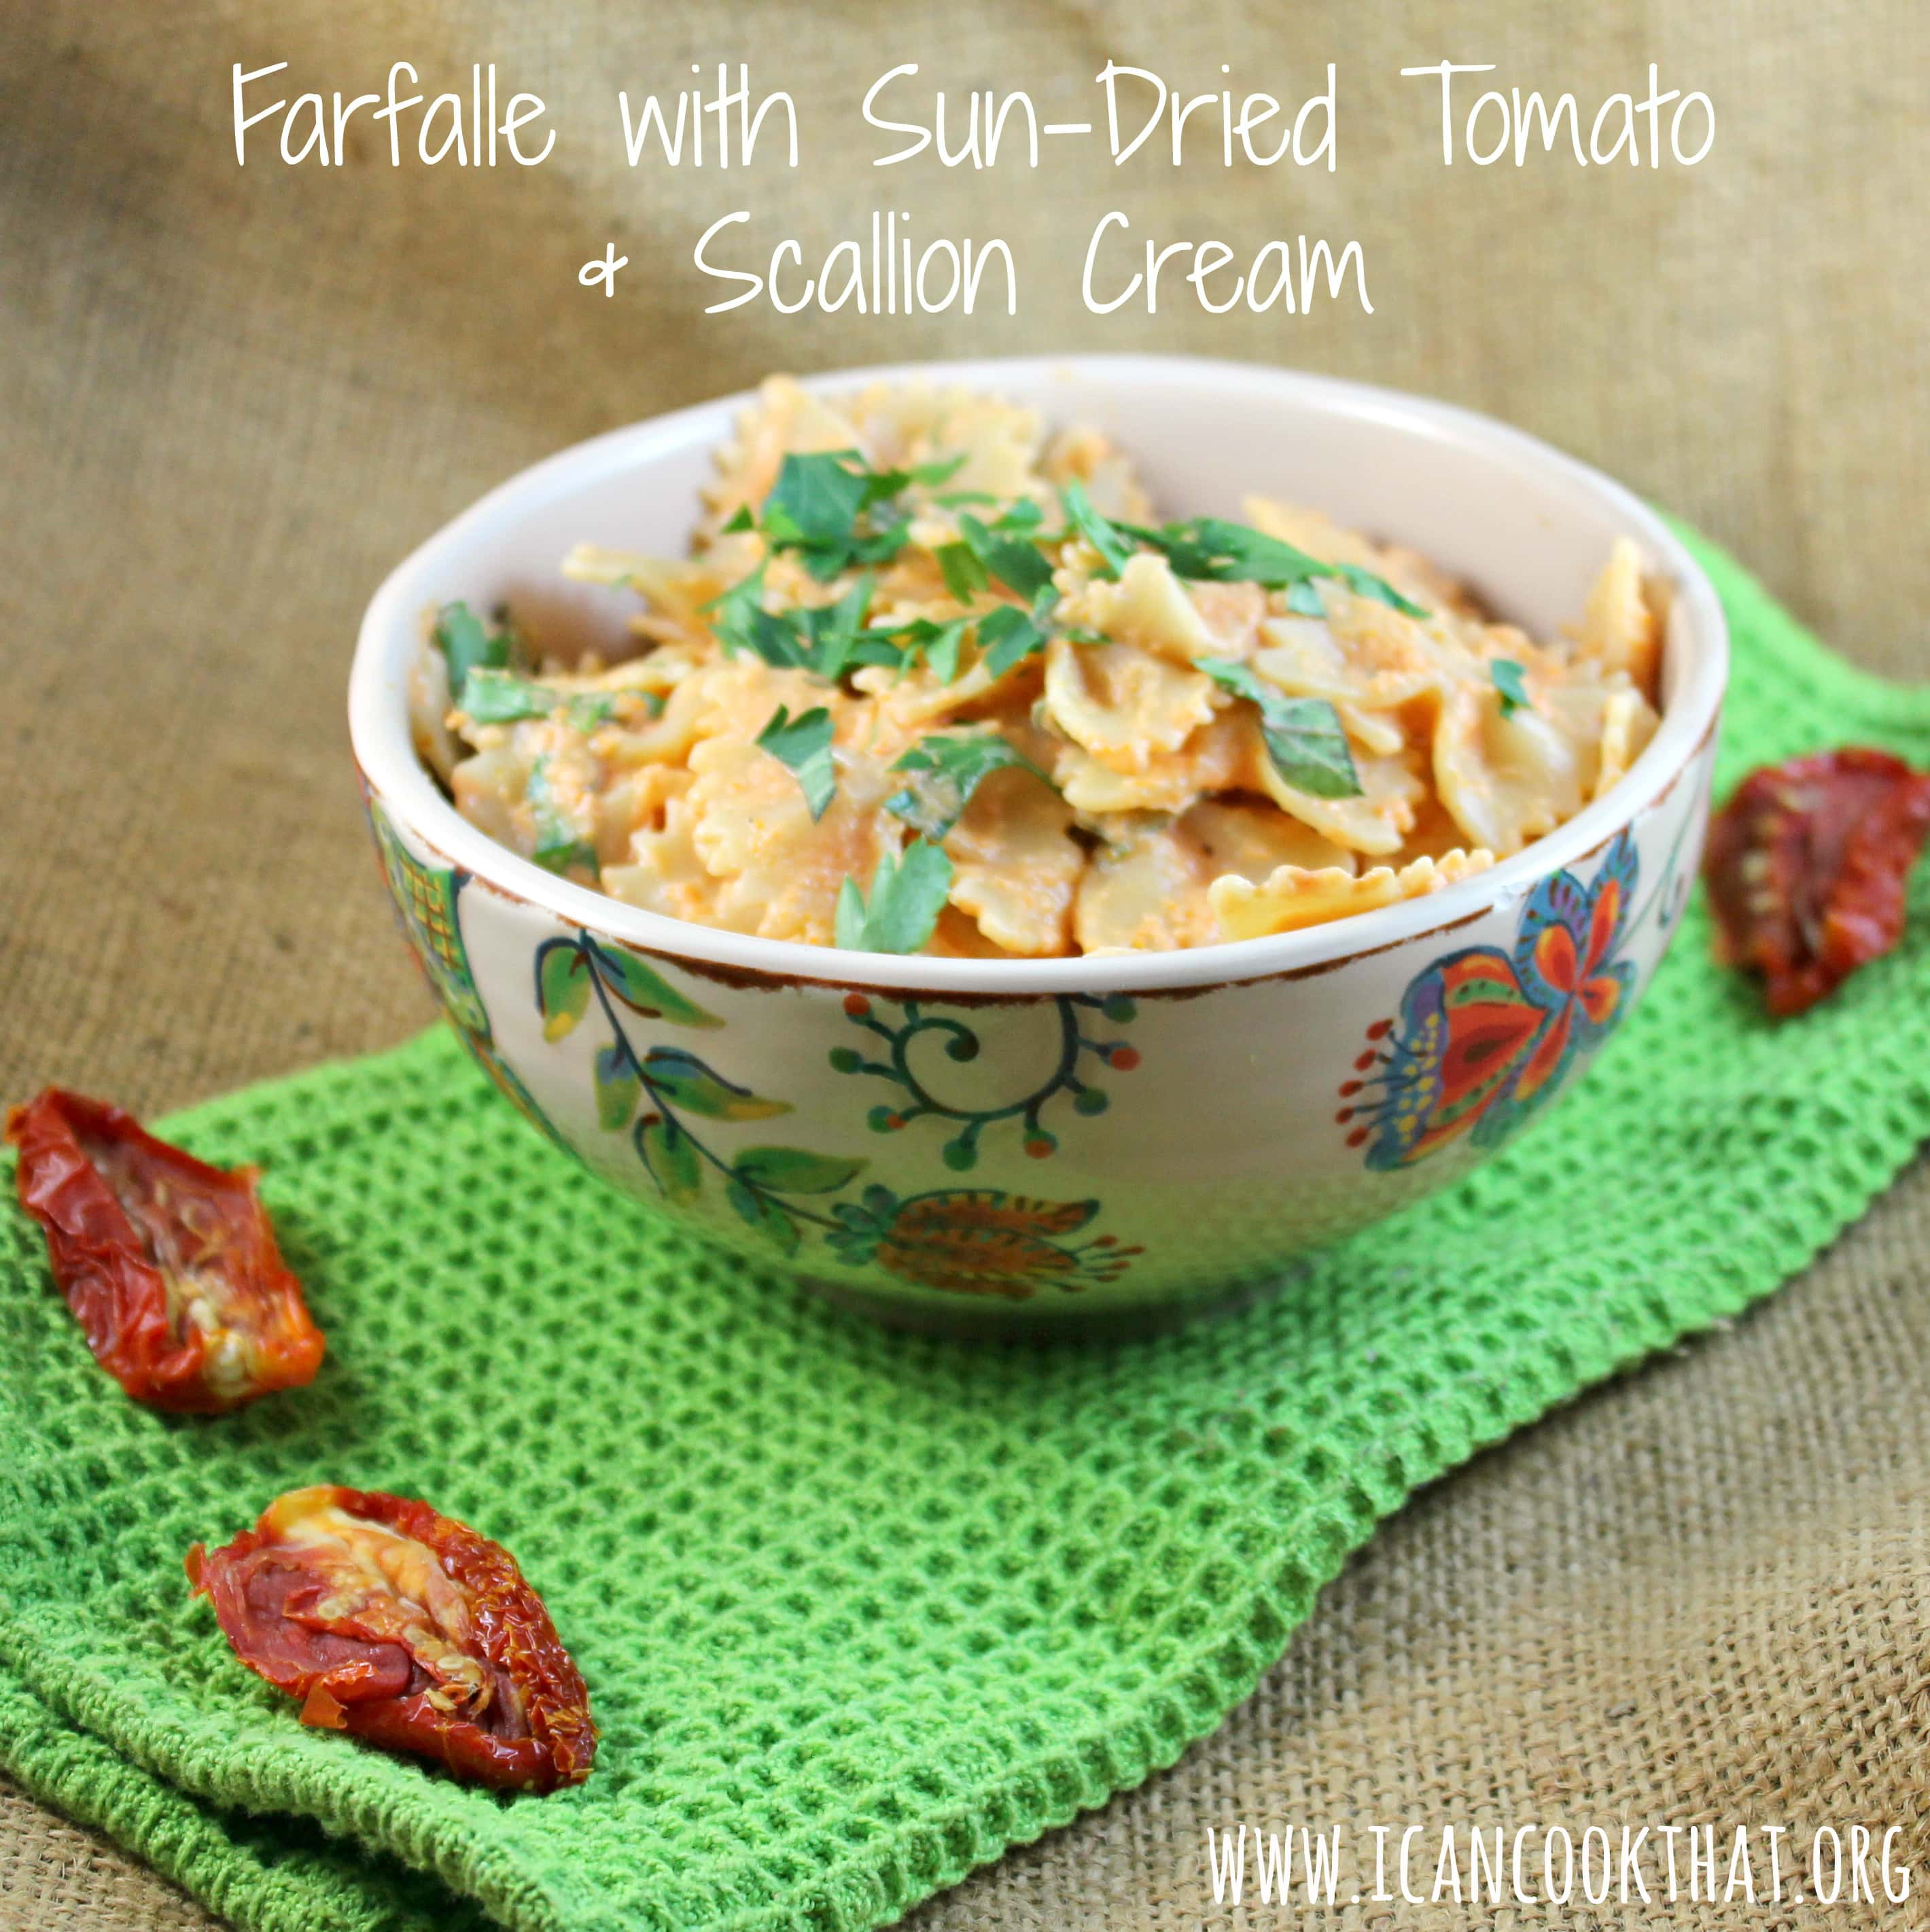 Wine uses sun-dried tomatoes to make a quick and simple no-cook sauce ...